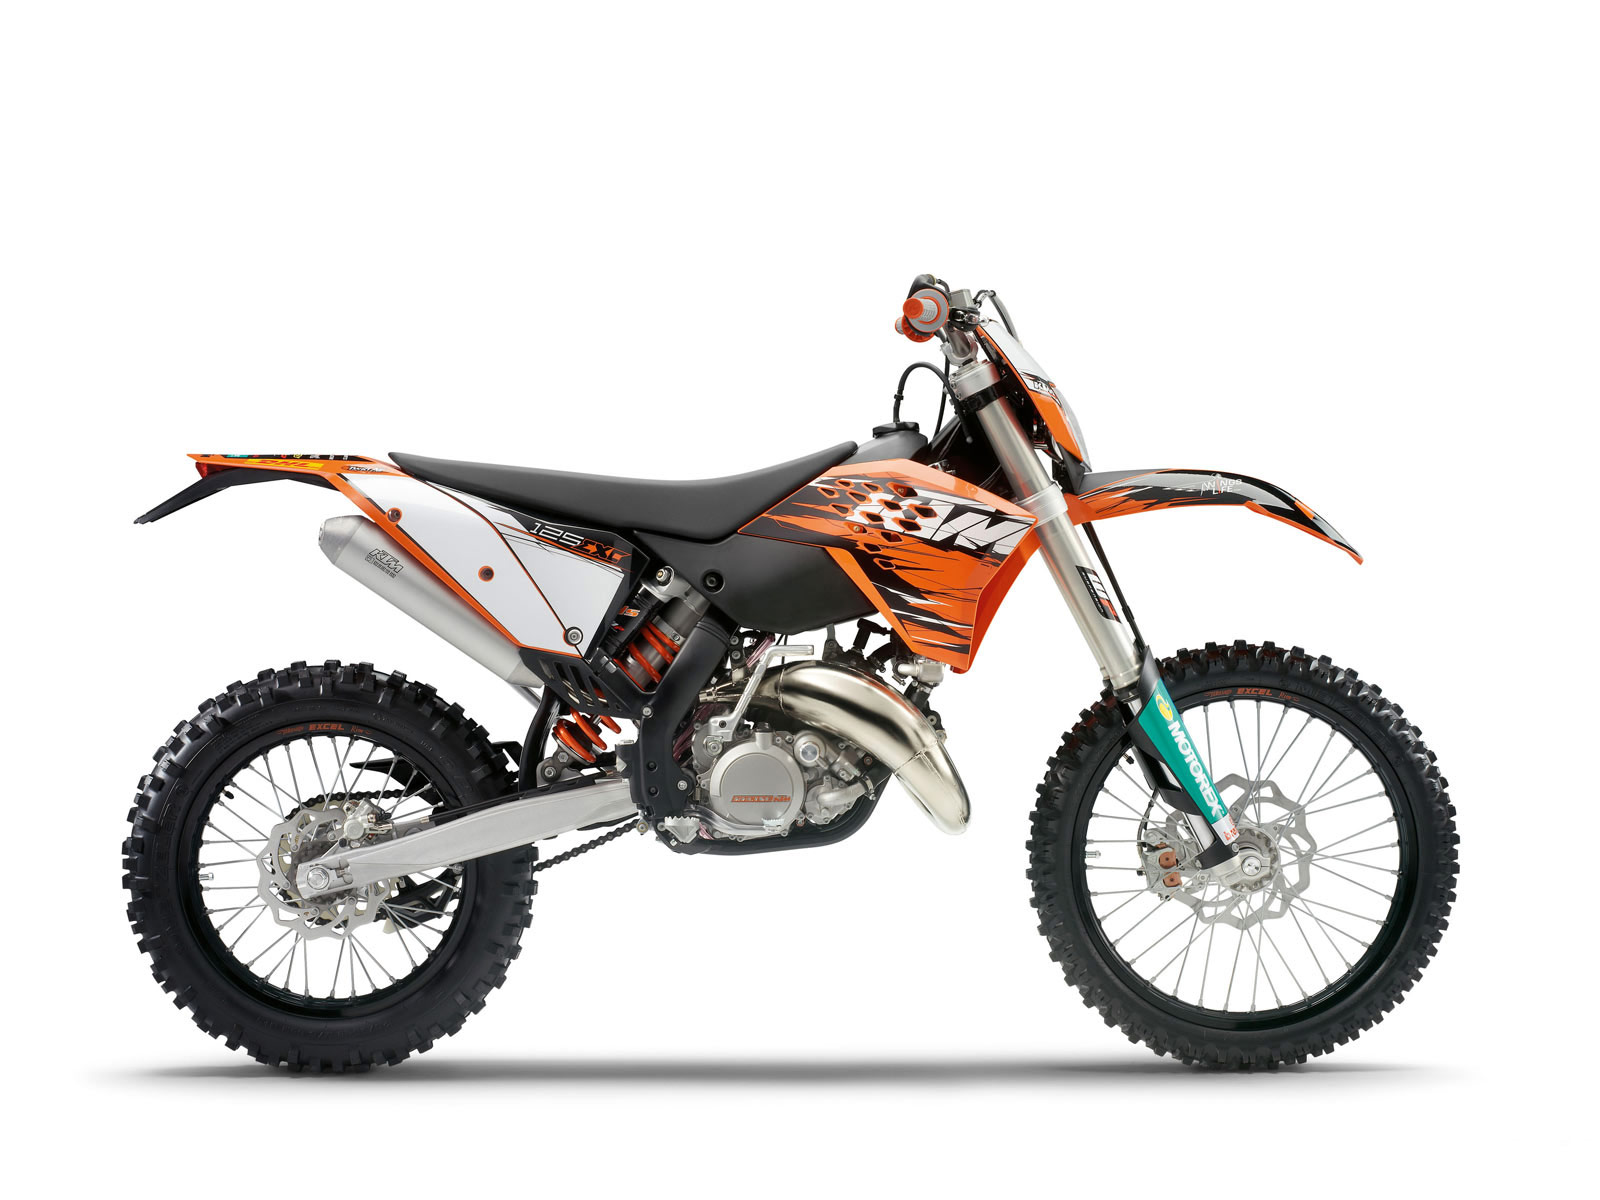 2010 ktm 125 exc motorcycle desktop wallpaper. Black Bedroom Furniture Sets. Home Design Ideas